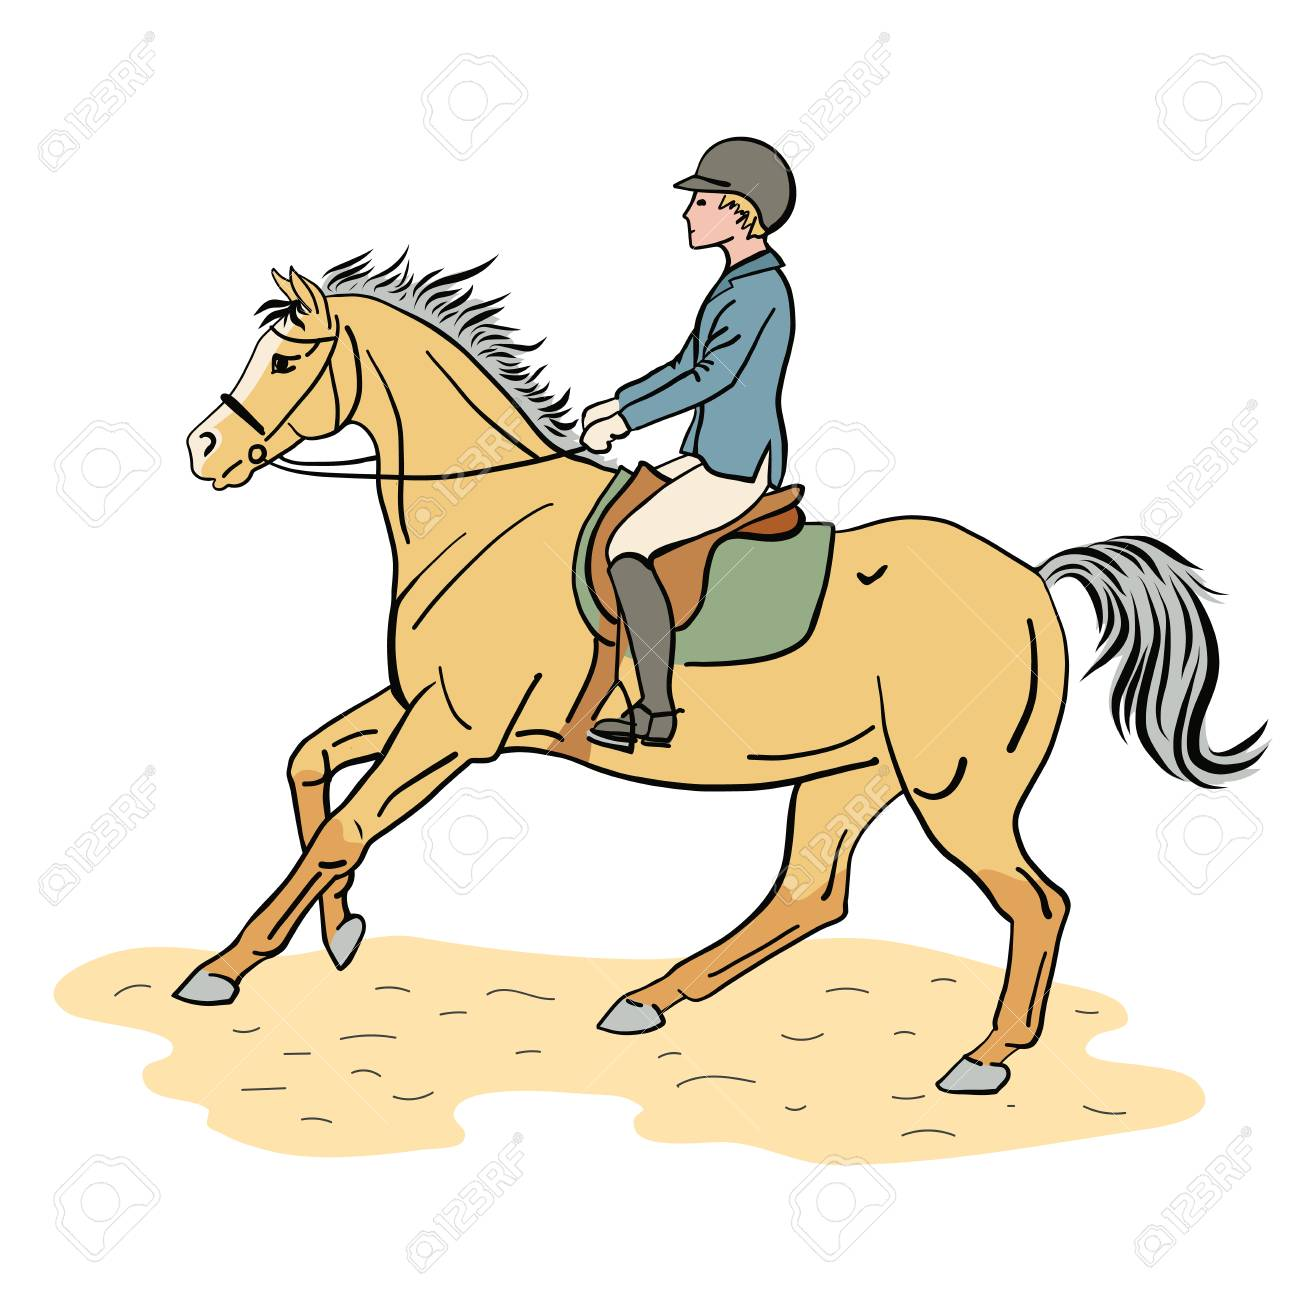 Equestrian Sport A Color Illustration Of A Boy Riding On A Pony Royalty Free Cliparts Vectors And Stock Illustration Image 105303285